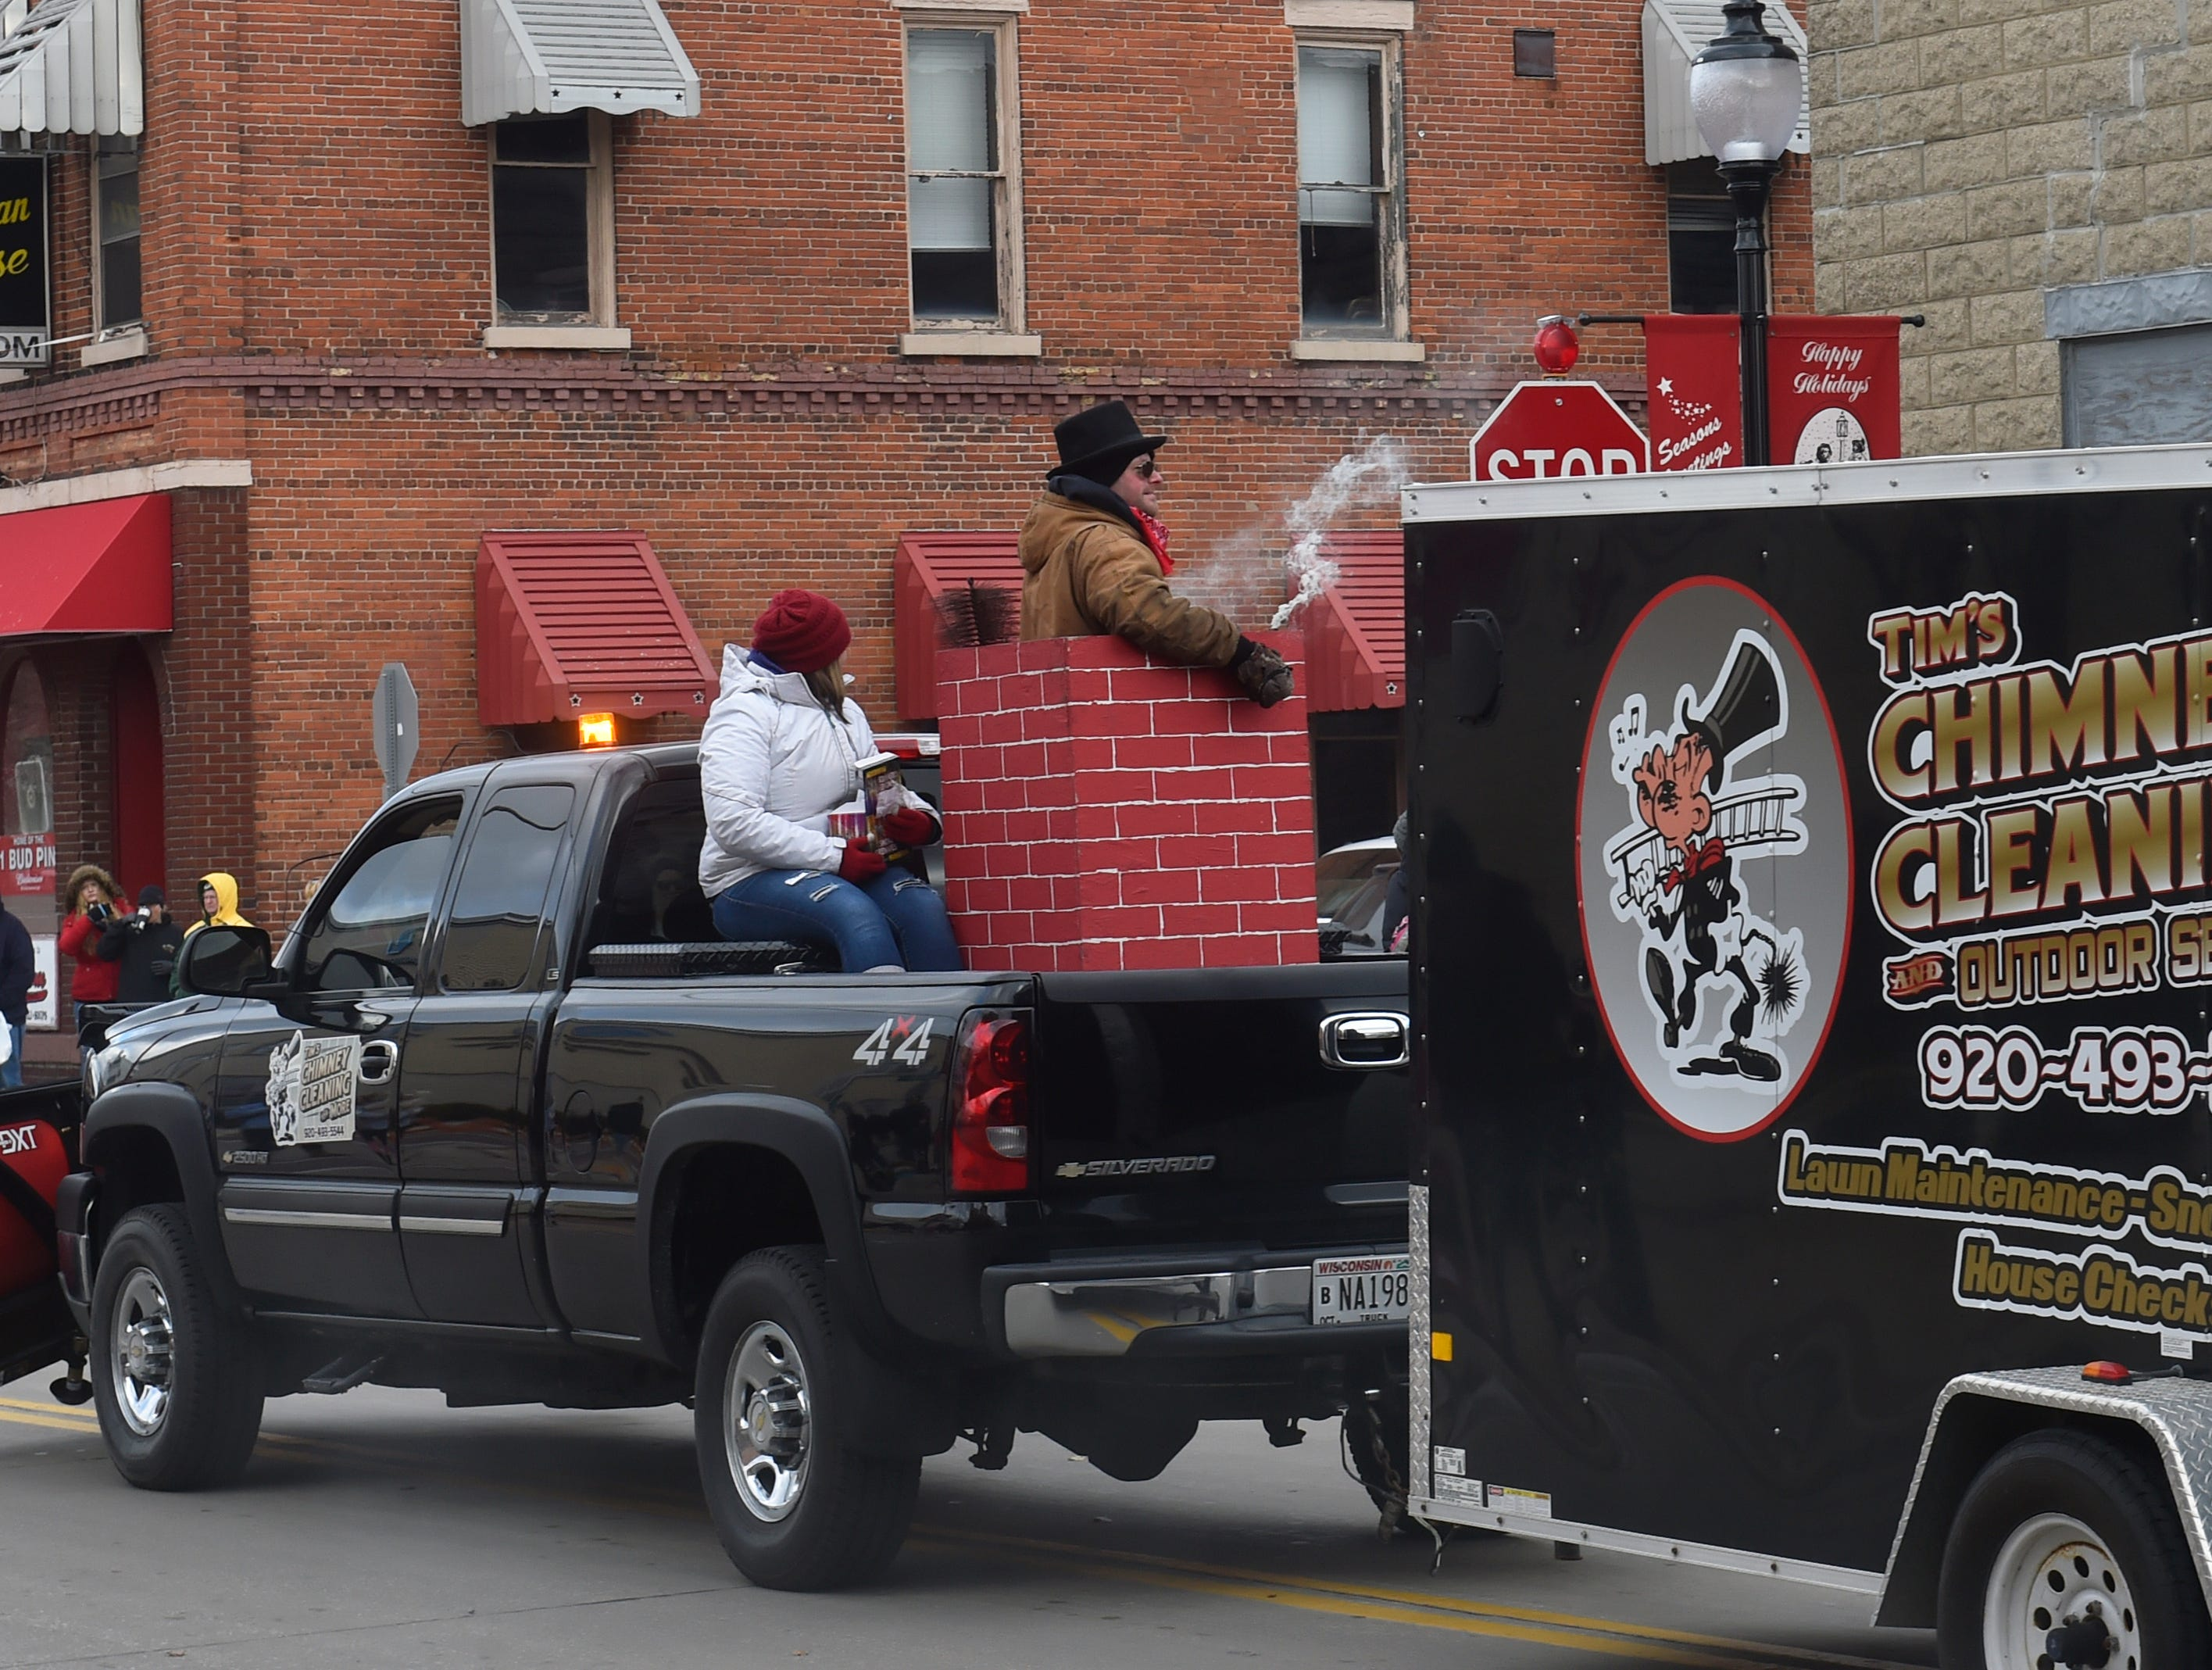 """A """"smoking'' chimney from Tim's Chimney Cleaning and Outdoor Services float at the Christmas By The Bay parade on Saturday, Nov. 17, 2018, in Sturgeon Bay. Tina M. Gohr/USA TODAY NETWORK-Wisconsin"""